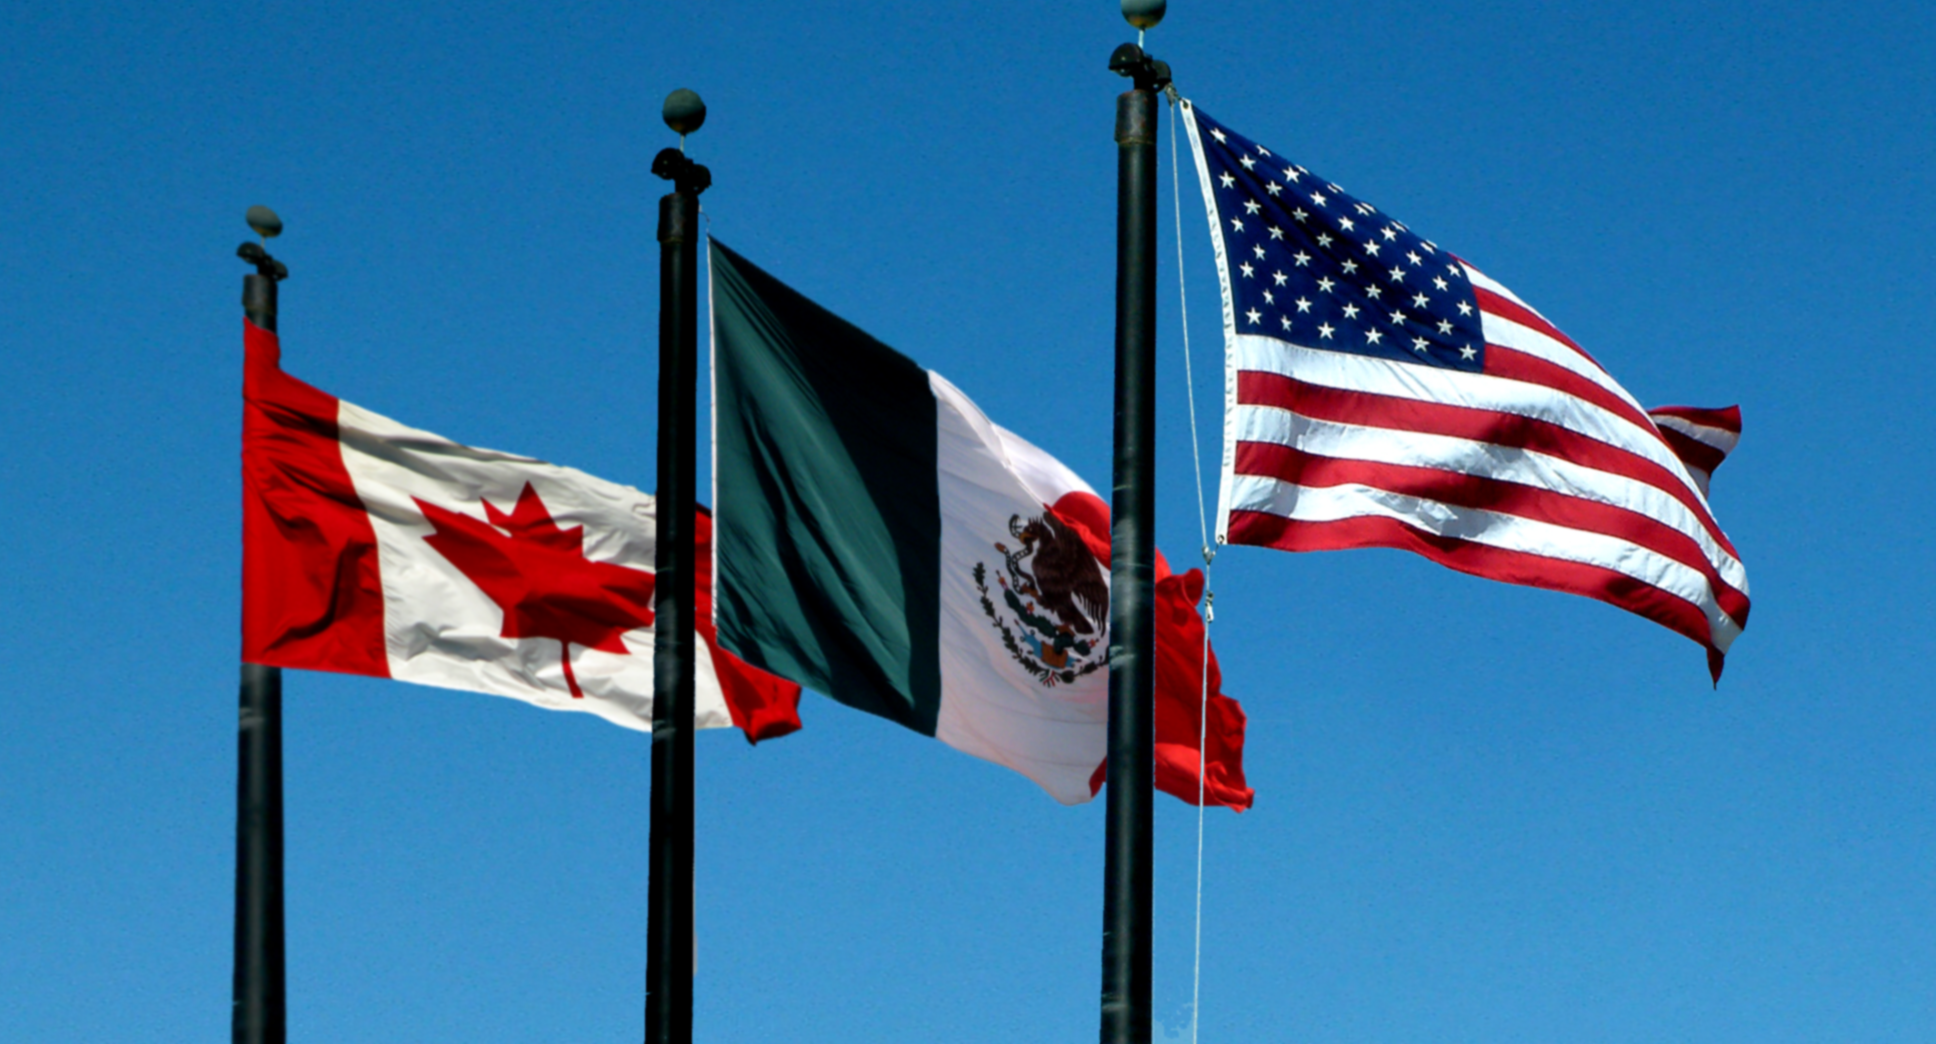 Cross Border - Looking to move freight into or out of Canada. We can take the stress out of cross-border shipments.